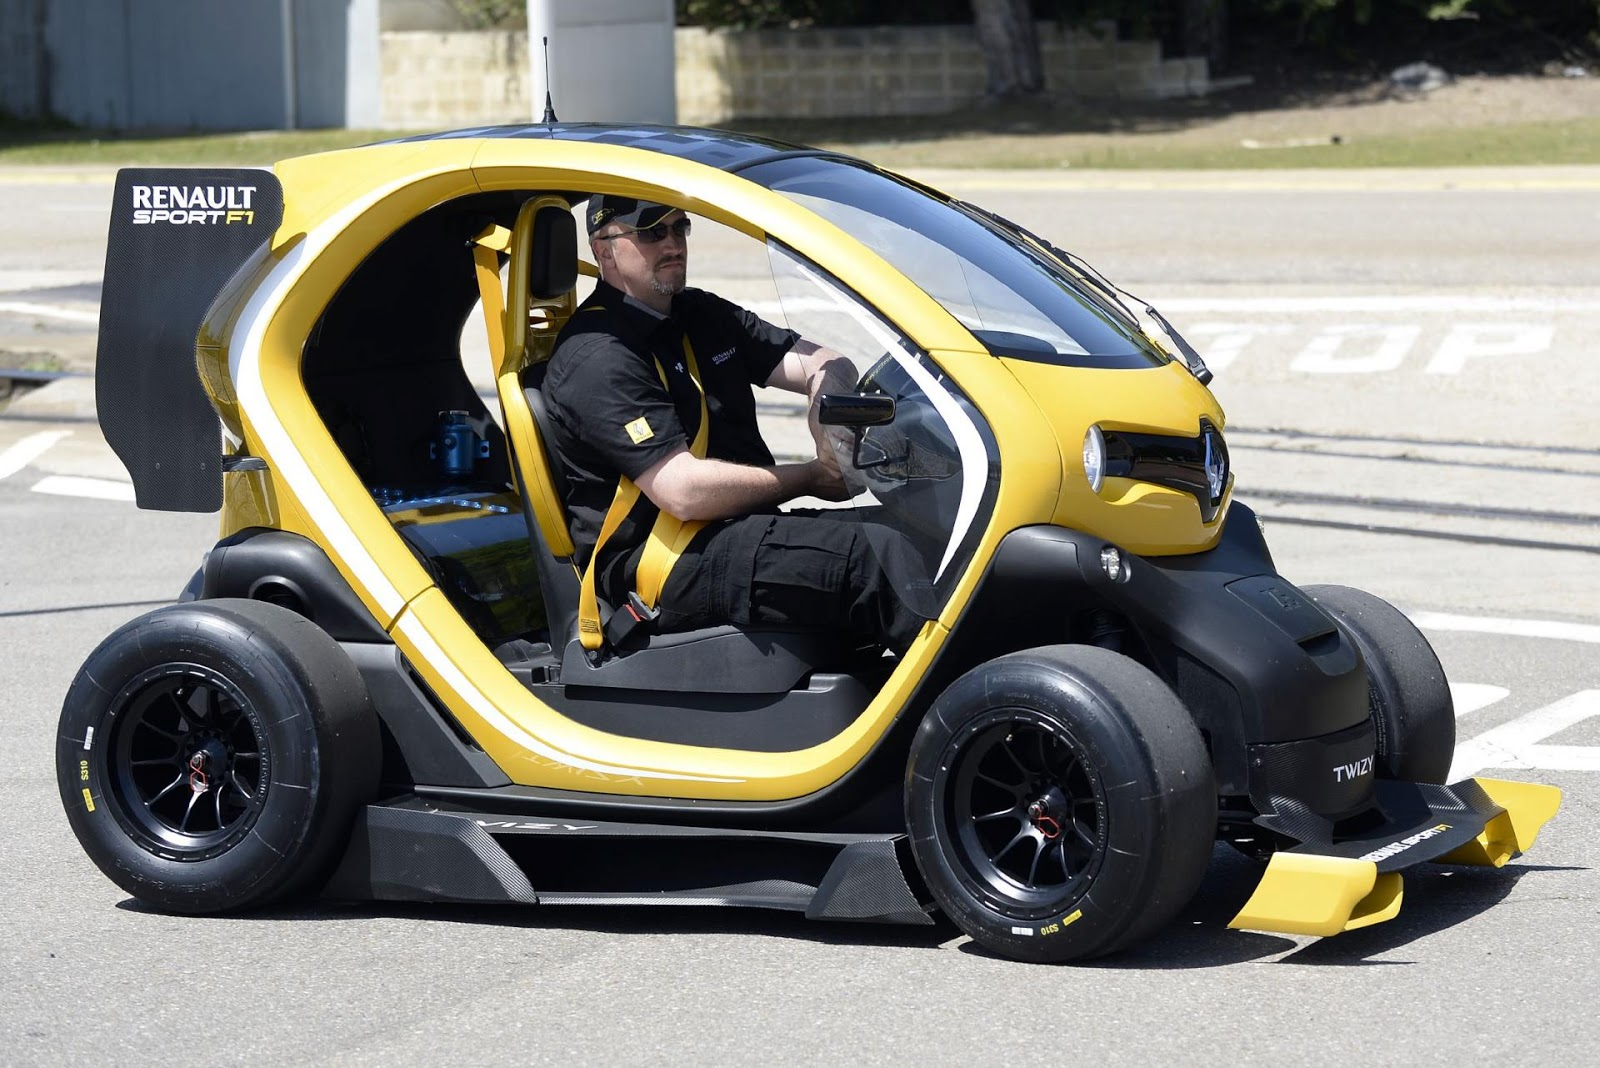 Renault Twizy Rs F1 Concept 2013 Hottest Car Wallpapers